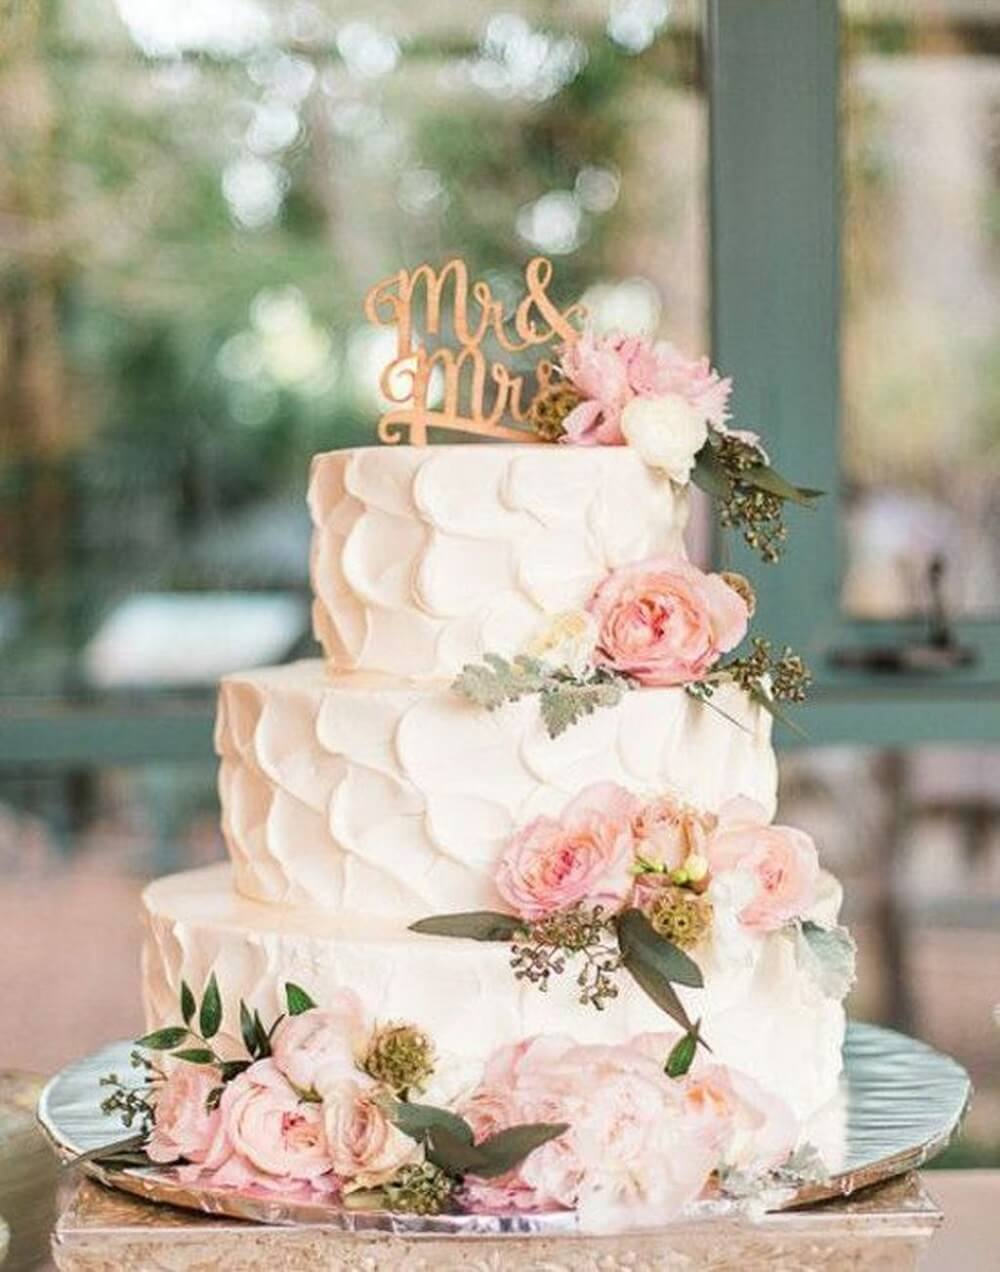 #5 Important Things To Keep In Mind Before Finalizing A Wedding Cake